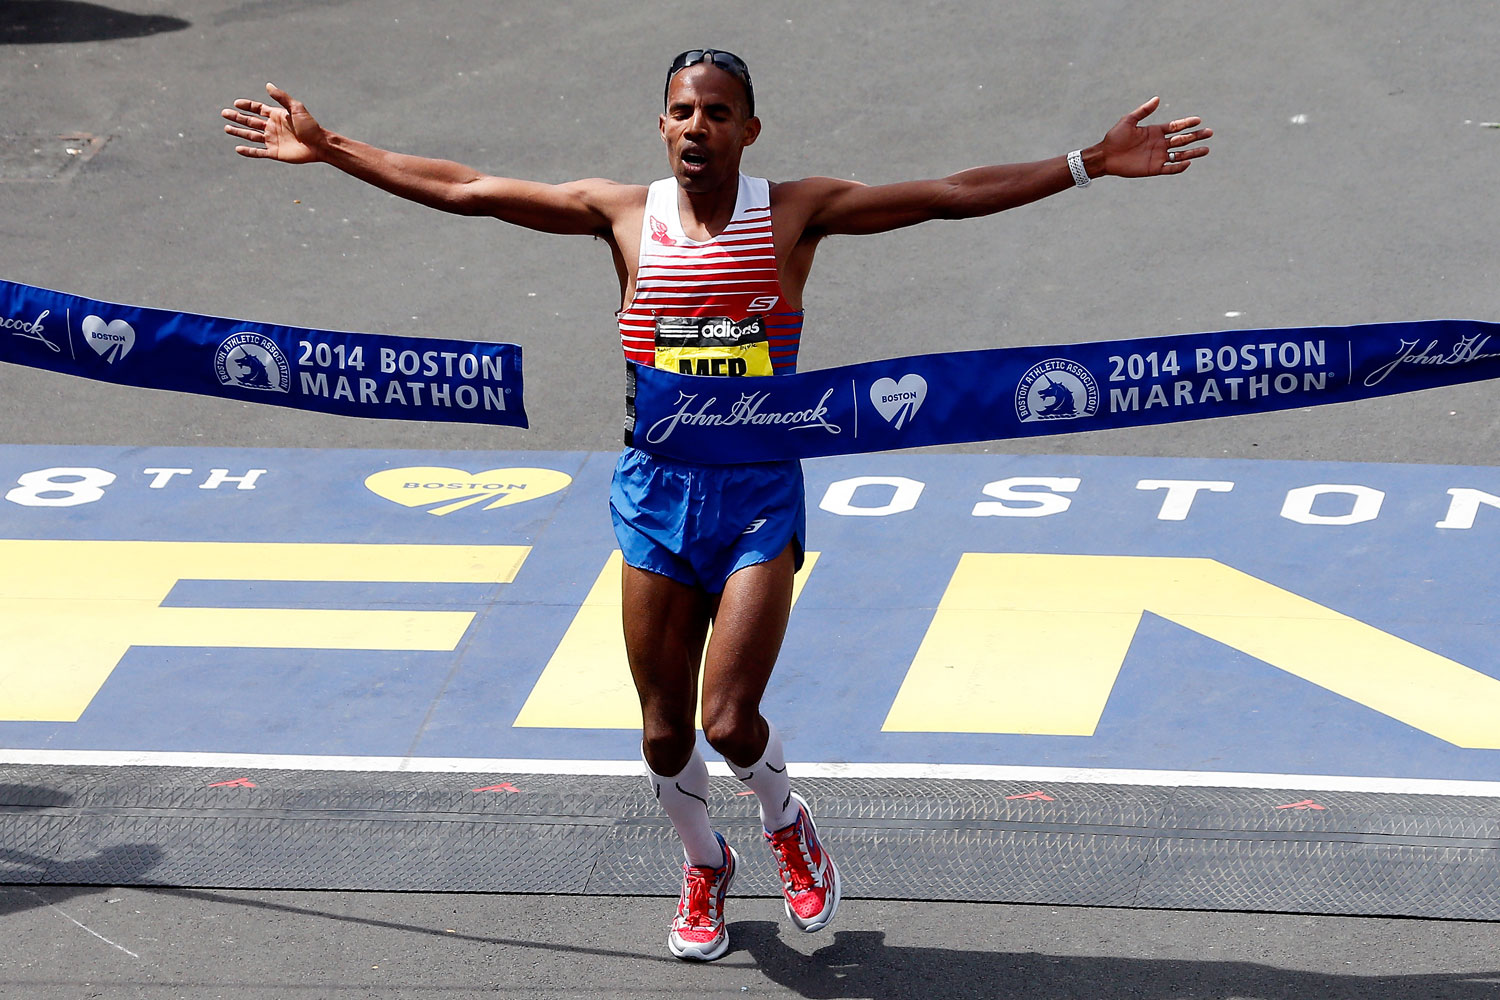 Meb Keflezighi crosses the finish line to become the first American to win the Boston Marathon since 1983 on April 21, 2014.